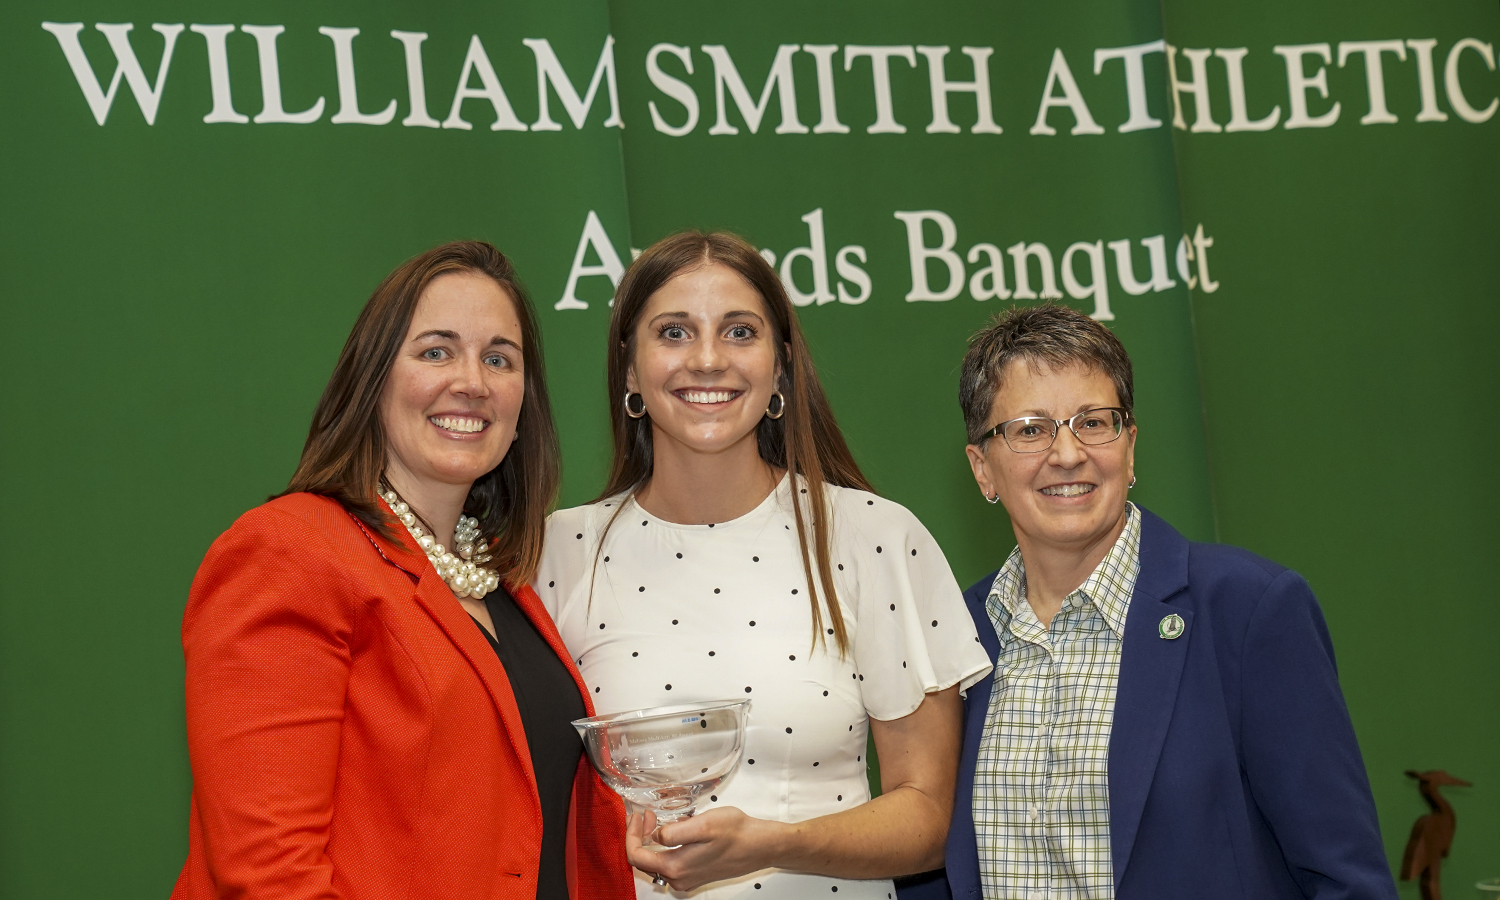 William Smith Athletics Awards216